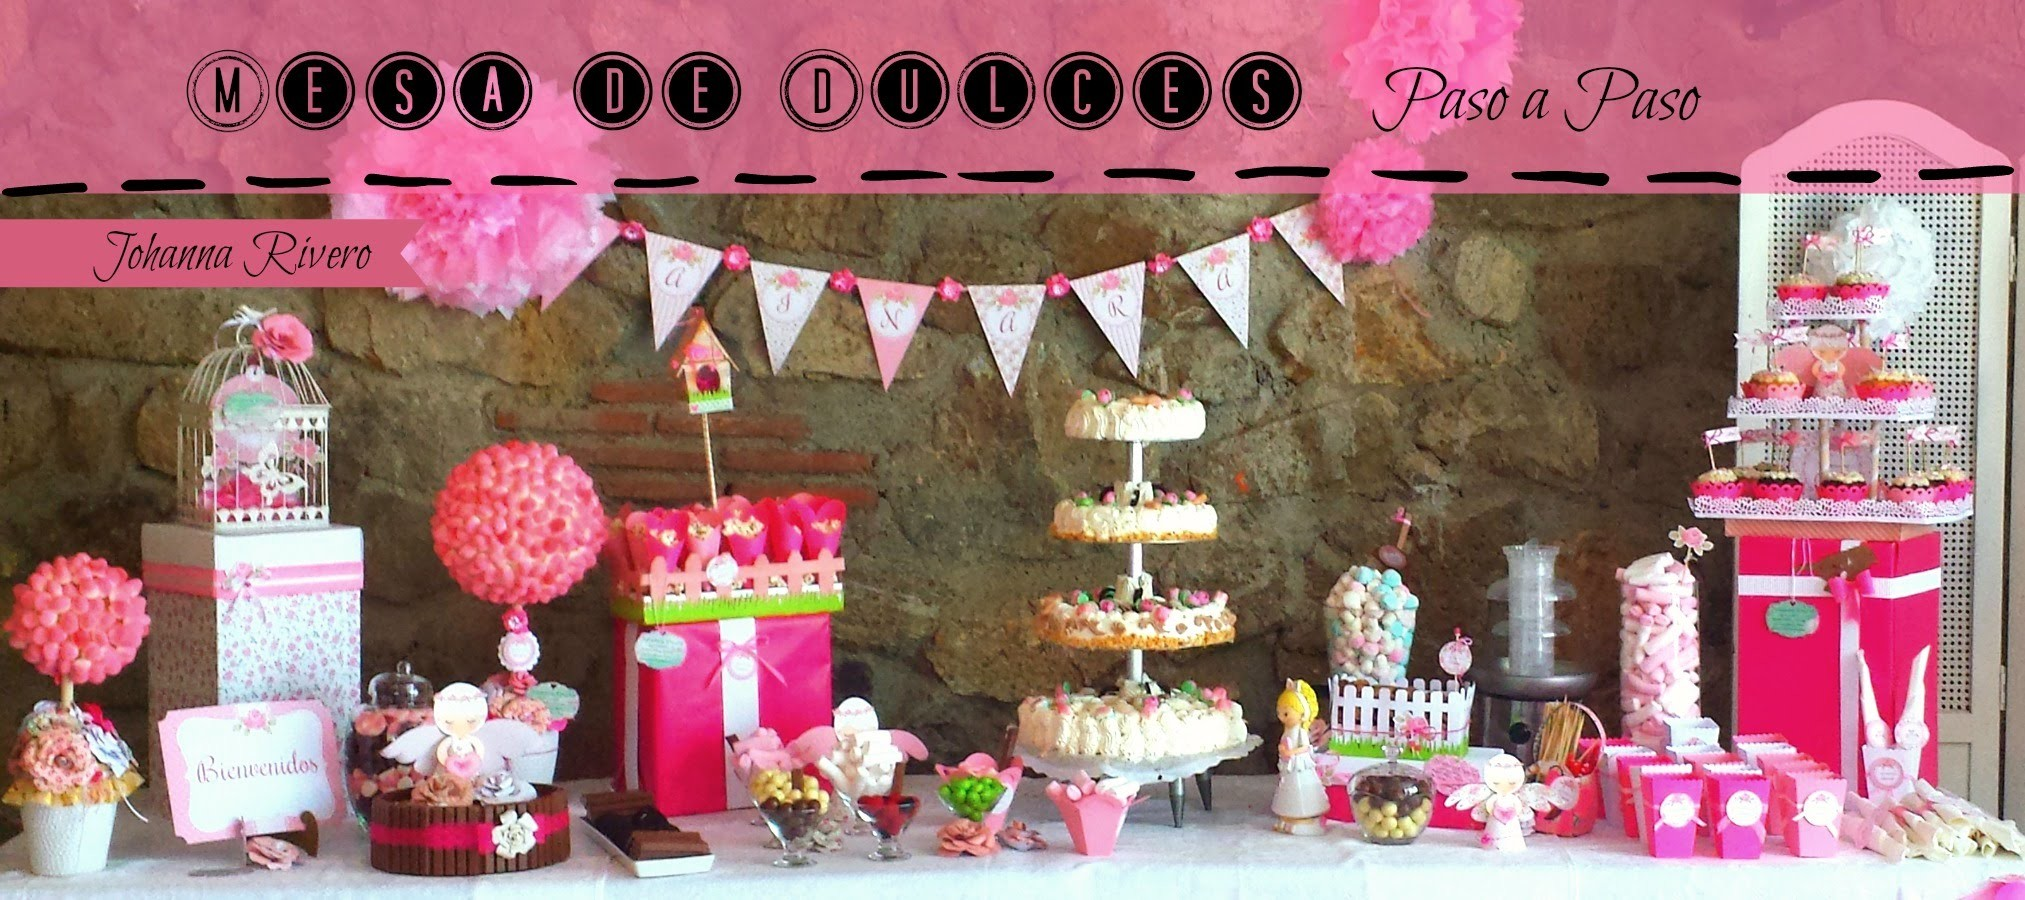 Decoracion mesa de dulces pomp n de cartulina scrapbook for Decoracion mesas dulces